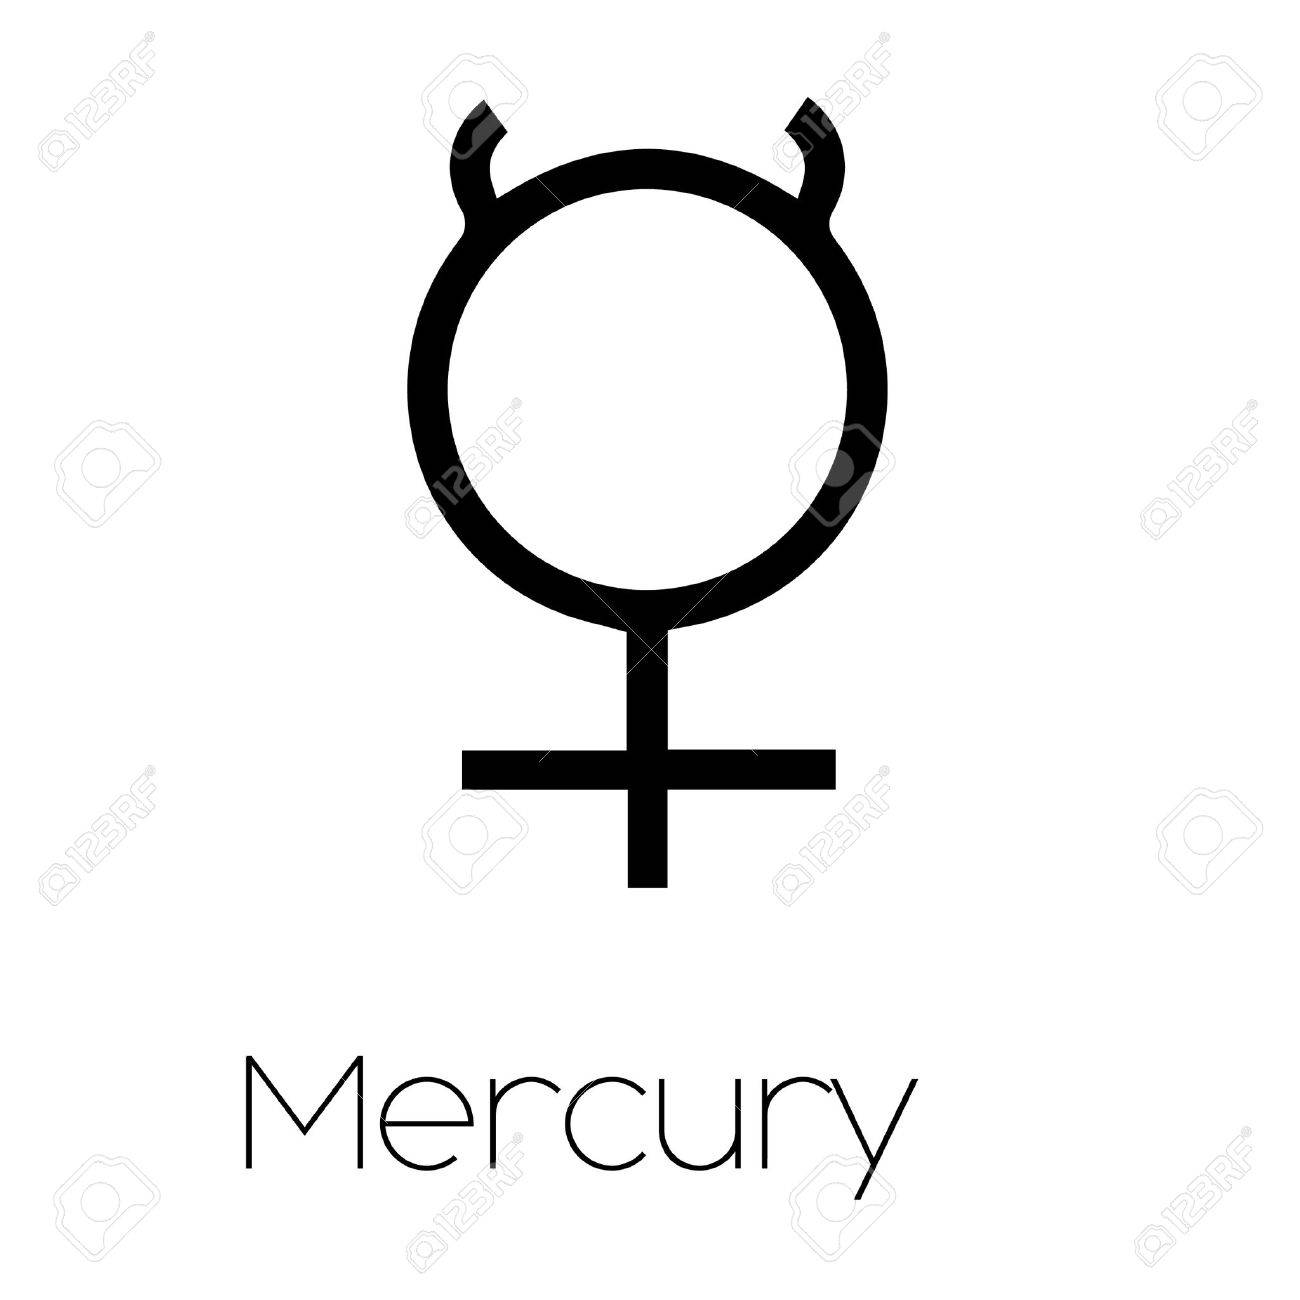 Illustrated Planet Symbols Mercury Stock Photo Picture And